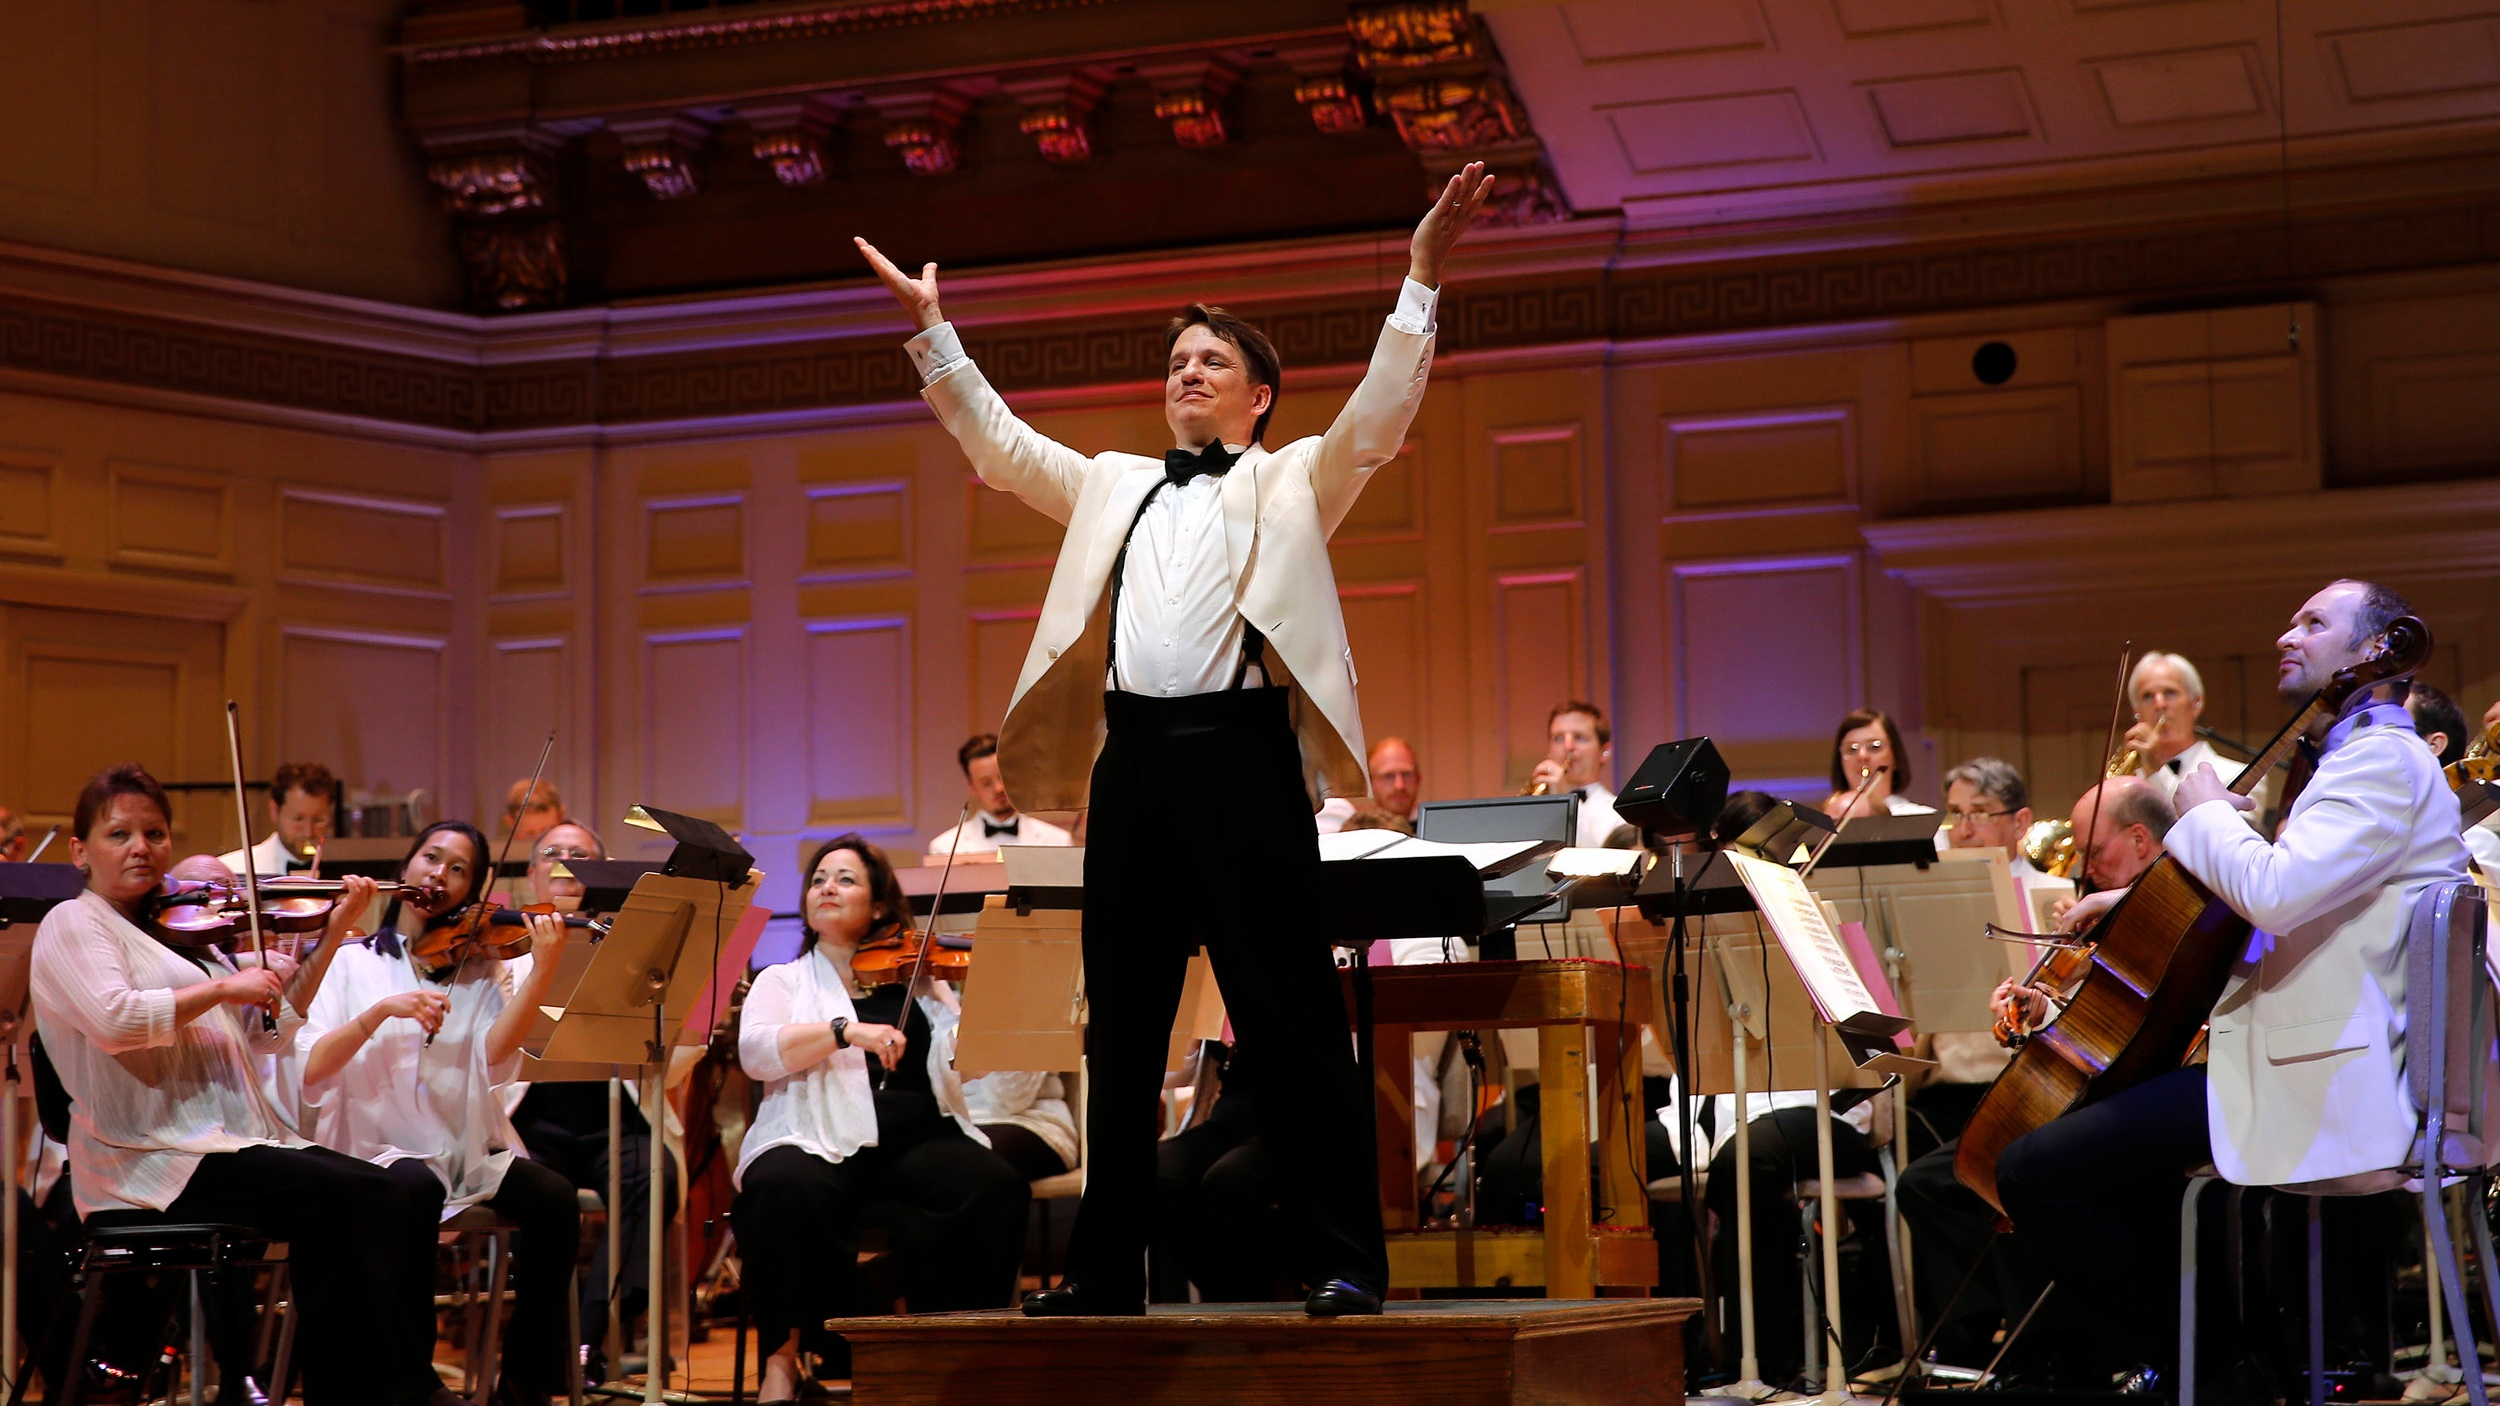 Keith+Lockhart+with+the+Boston+Pops+_WT26654+%28Winslow+Townson%29.jpg